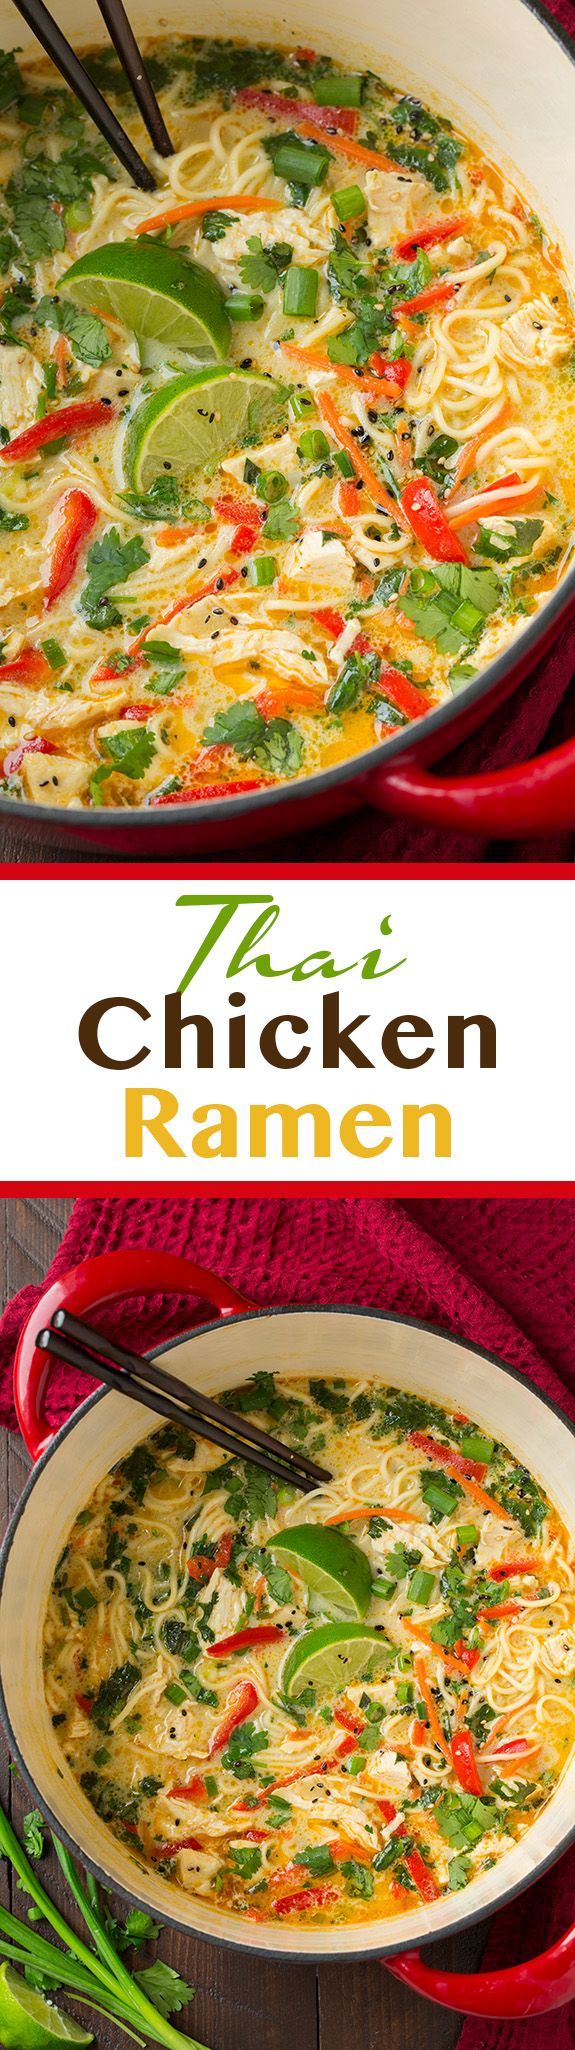 Thai Chicken Ramen - this is AMAZING! Easy to make and seriously so good!